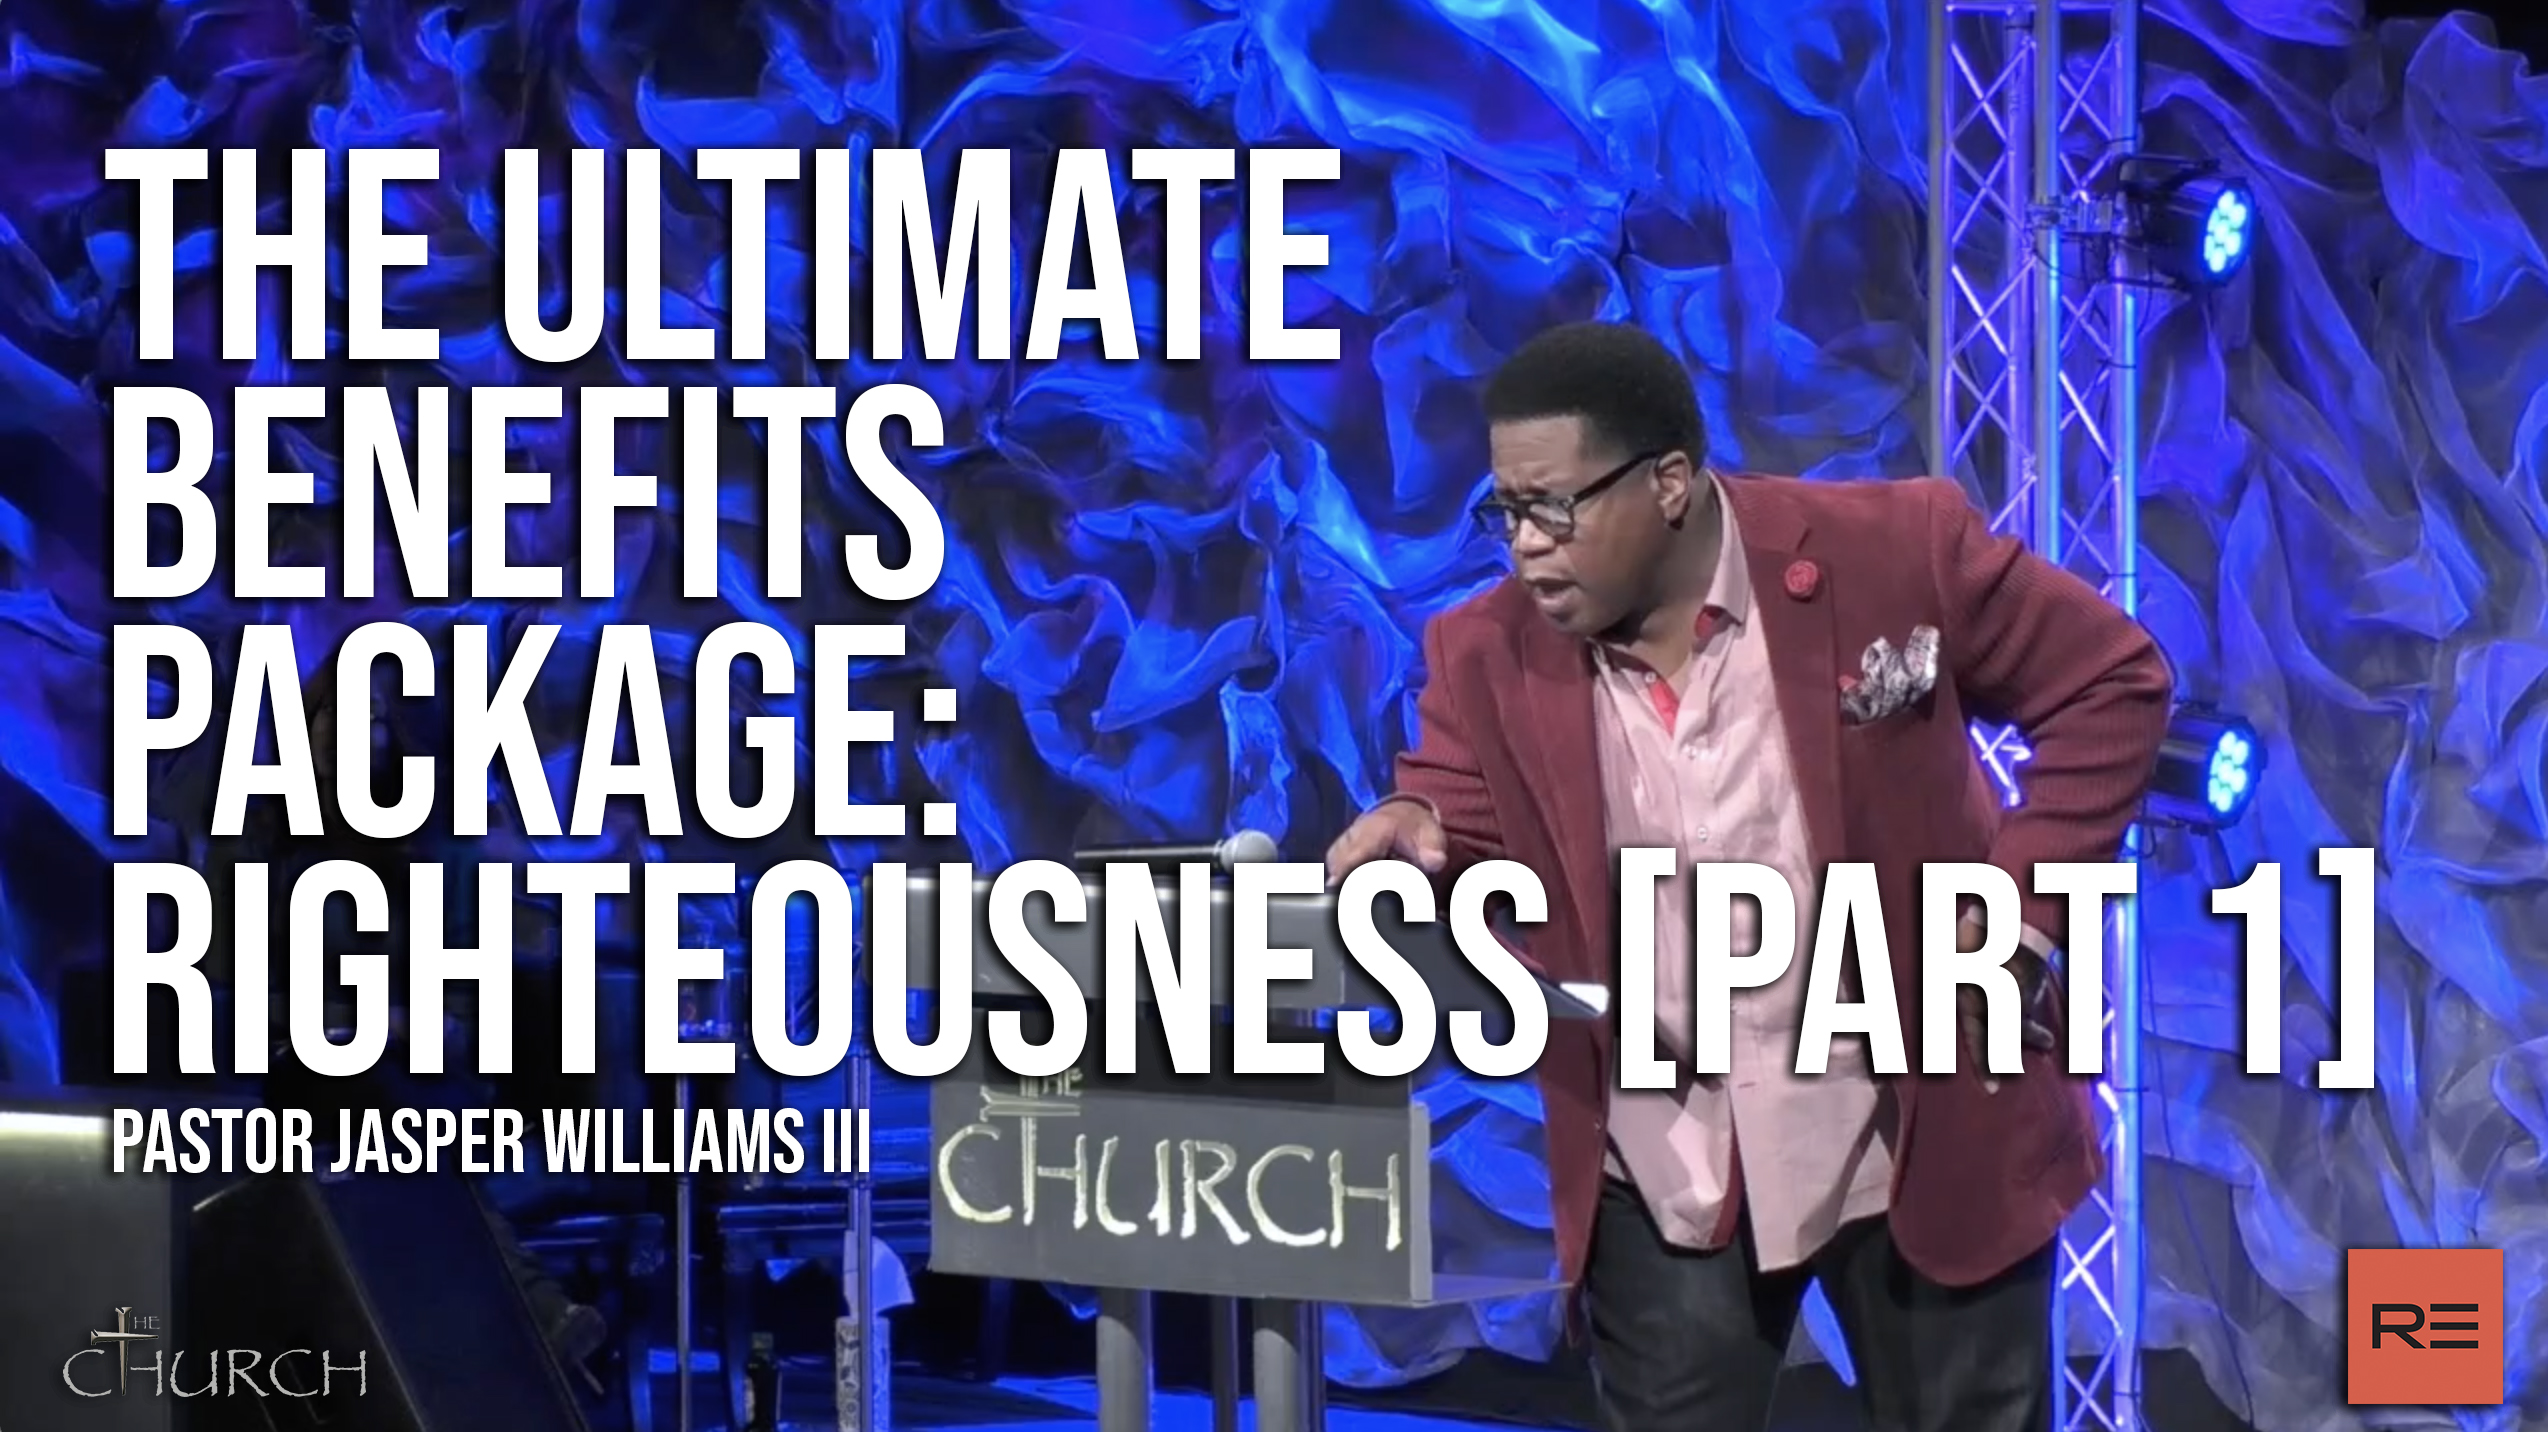 The Ultimate Benefits Package | Righteousness [Part 1] - Pastor Jasper Williams